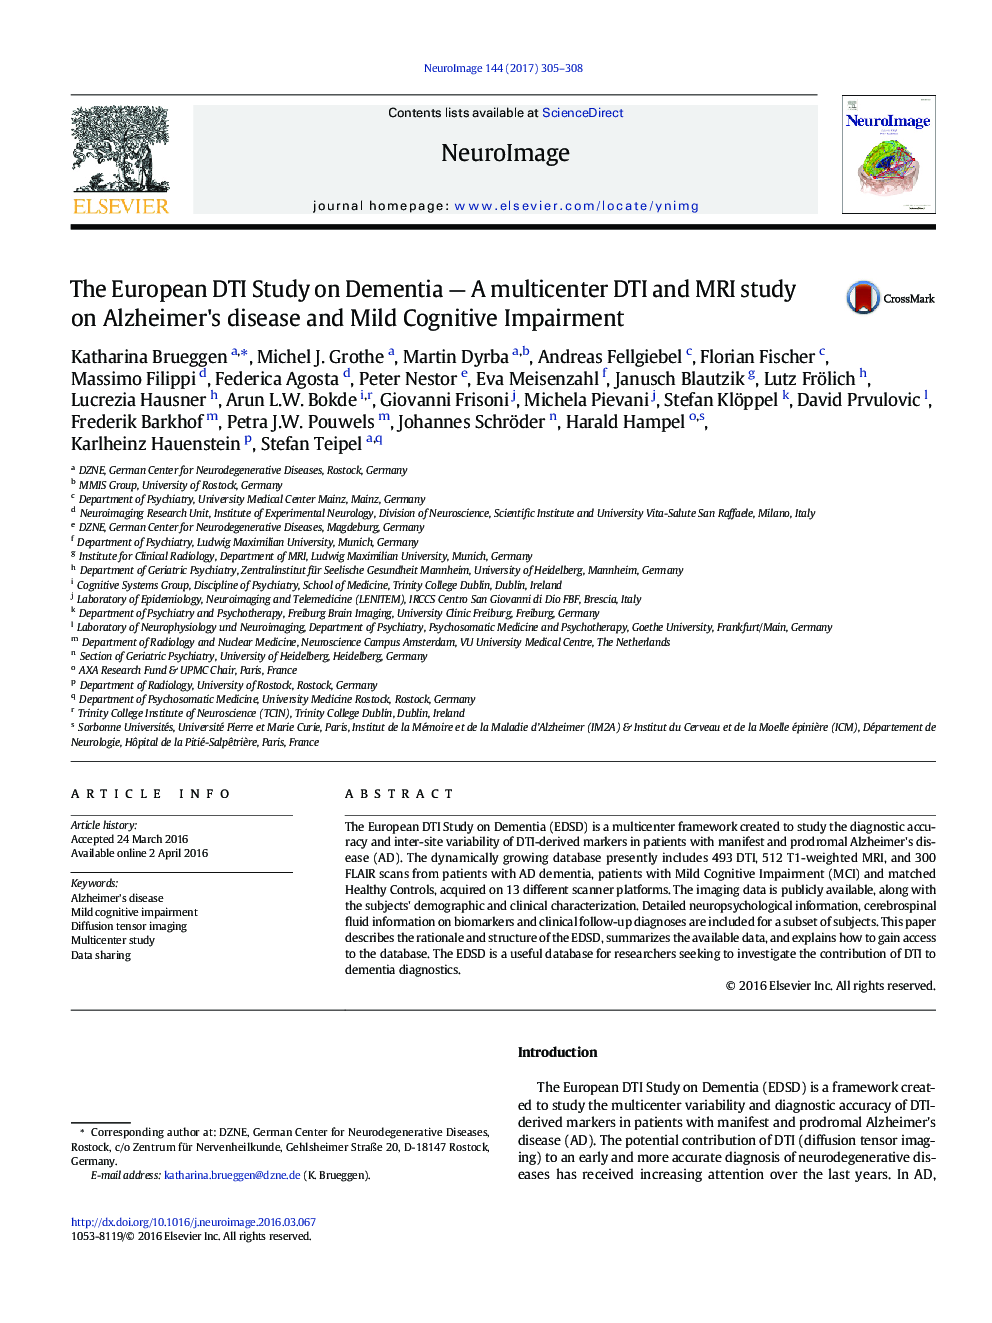 The European DTI Study on Dementia — A multicenter DTI and MRI study on Alzheimer's disease and Mild Cognitive Impairment